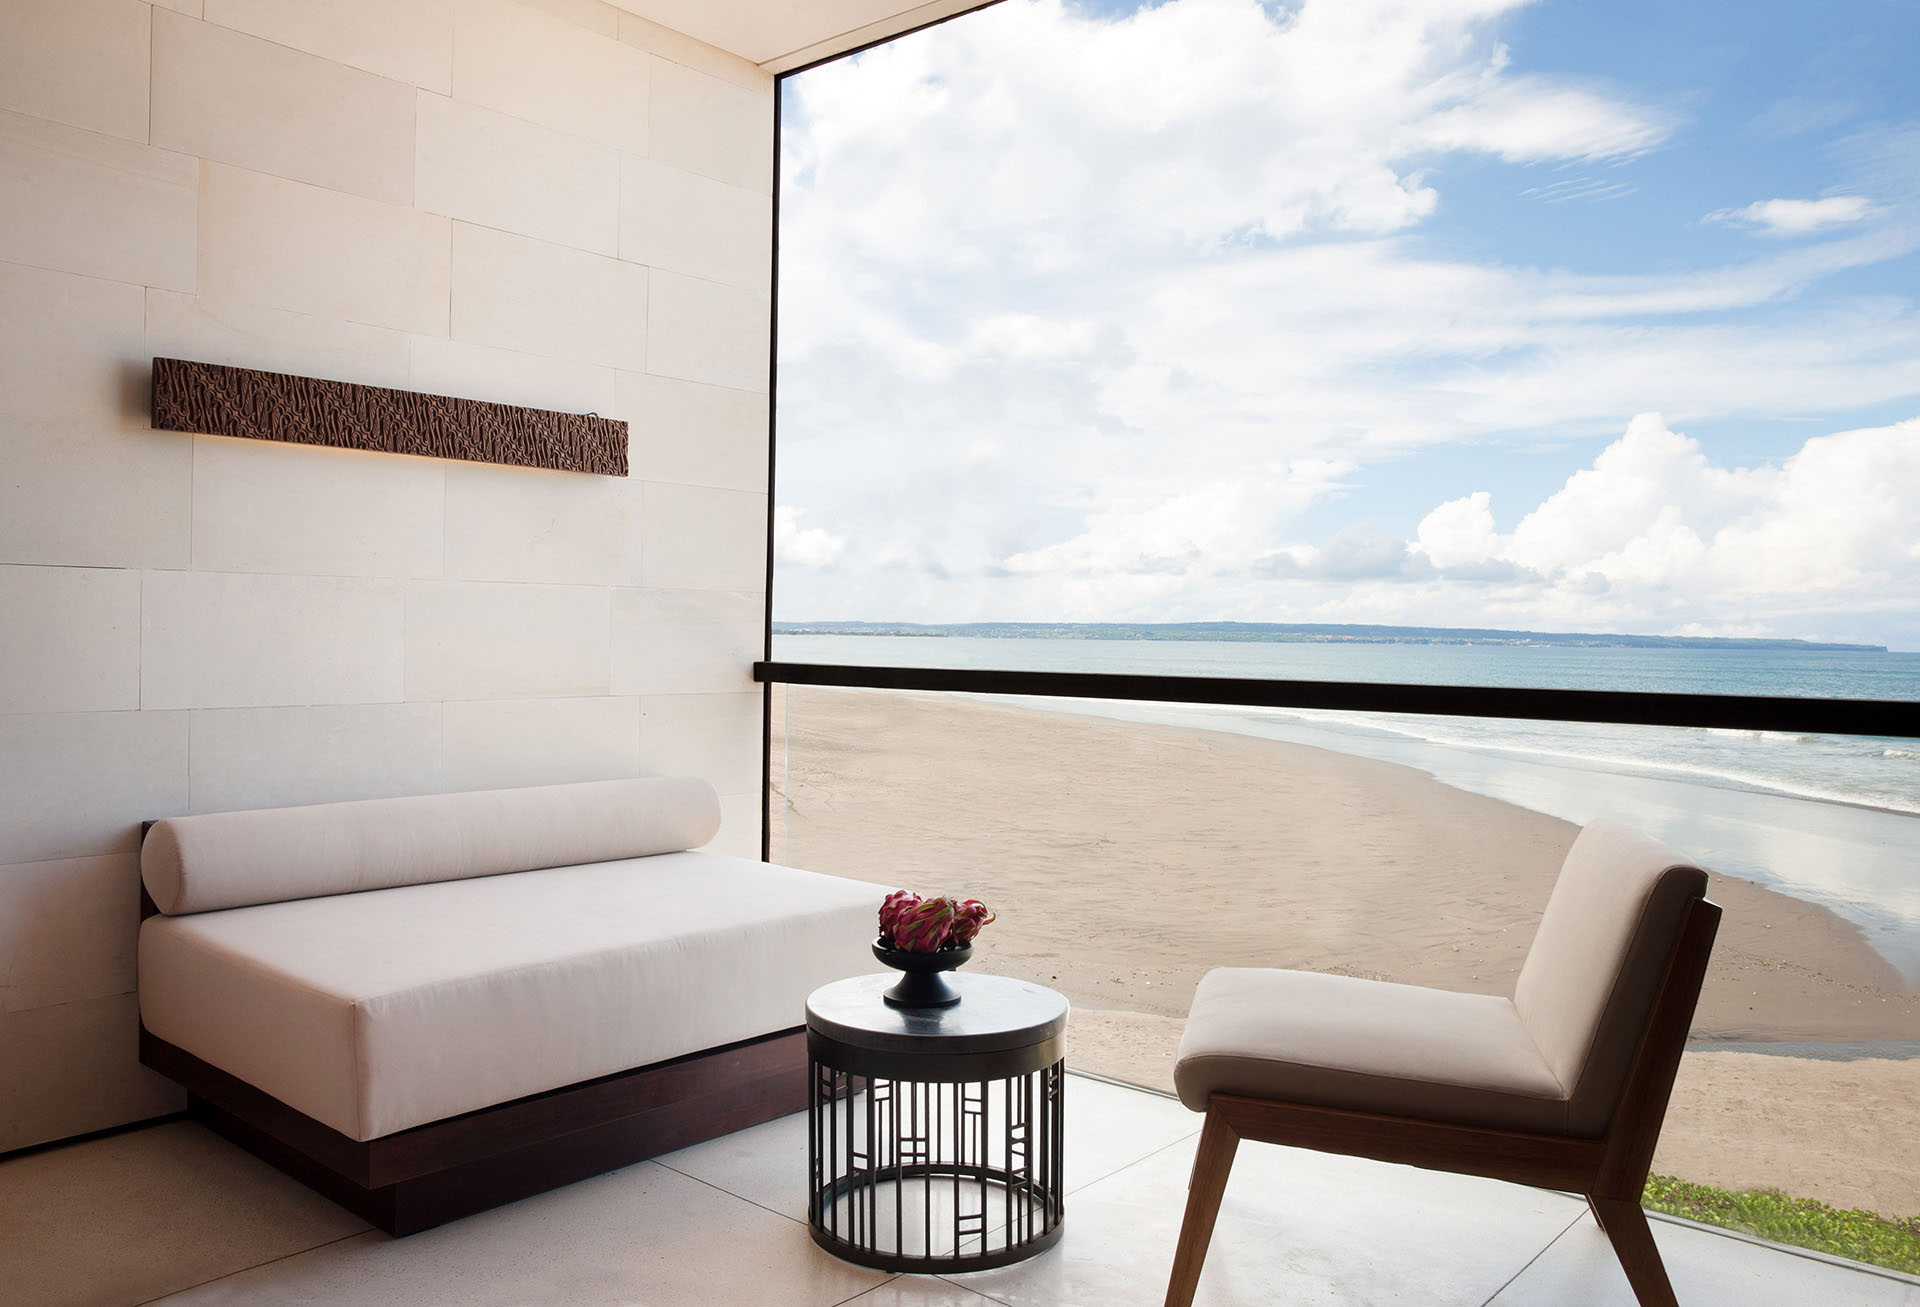 Ocean View Suite - Balcony